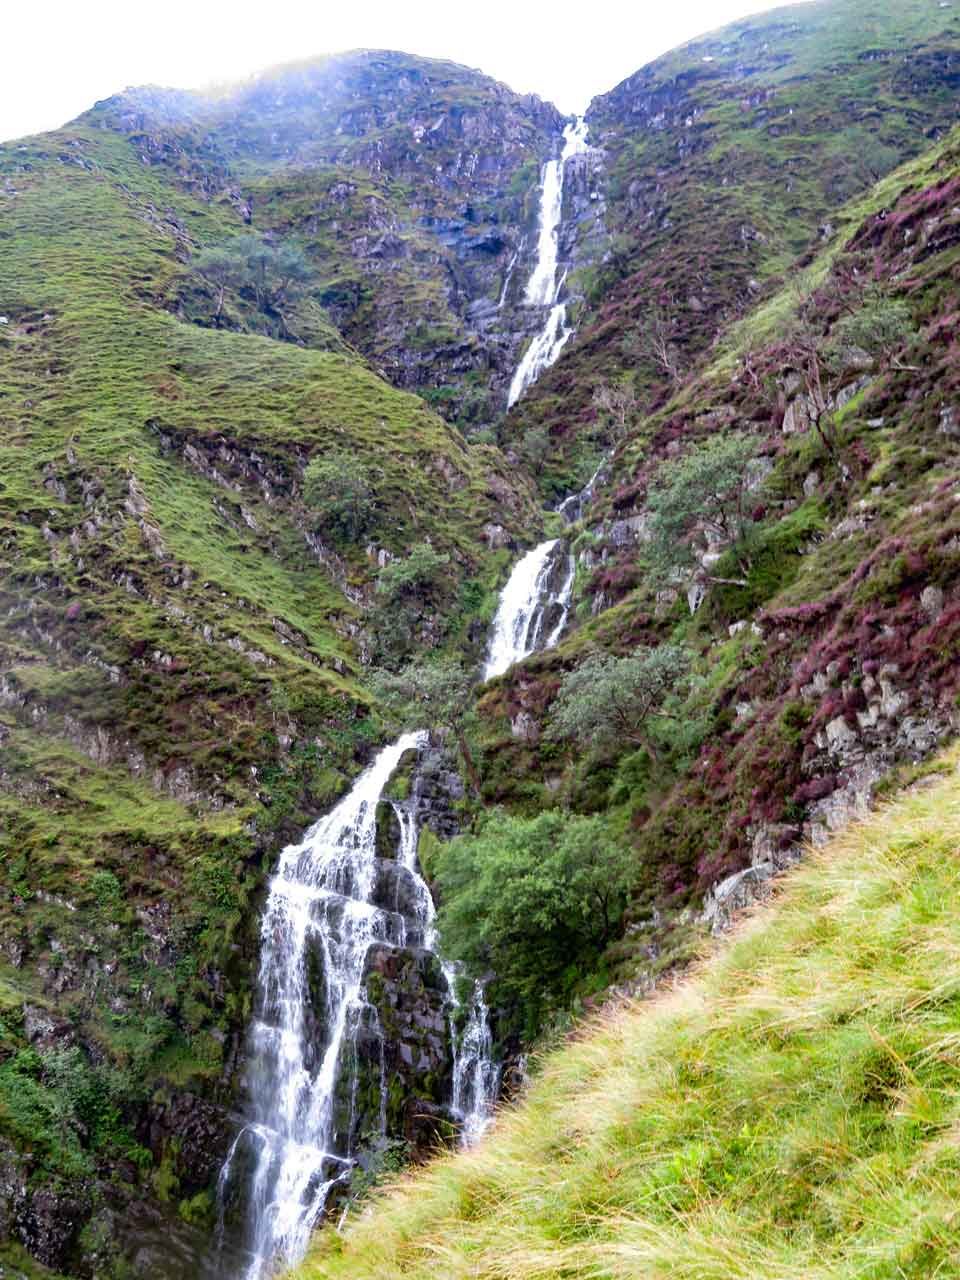 Cautley Spout, great in all kinds of weather